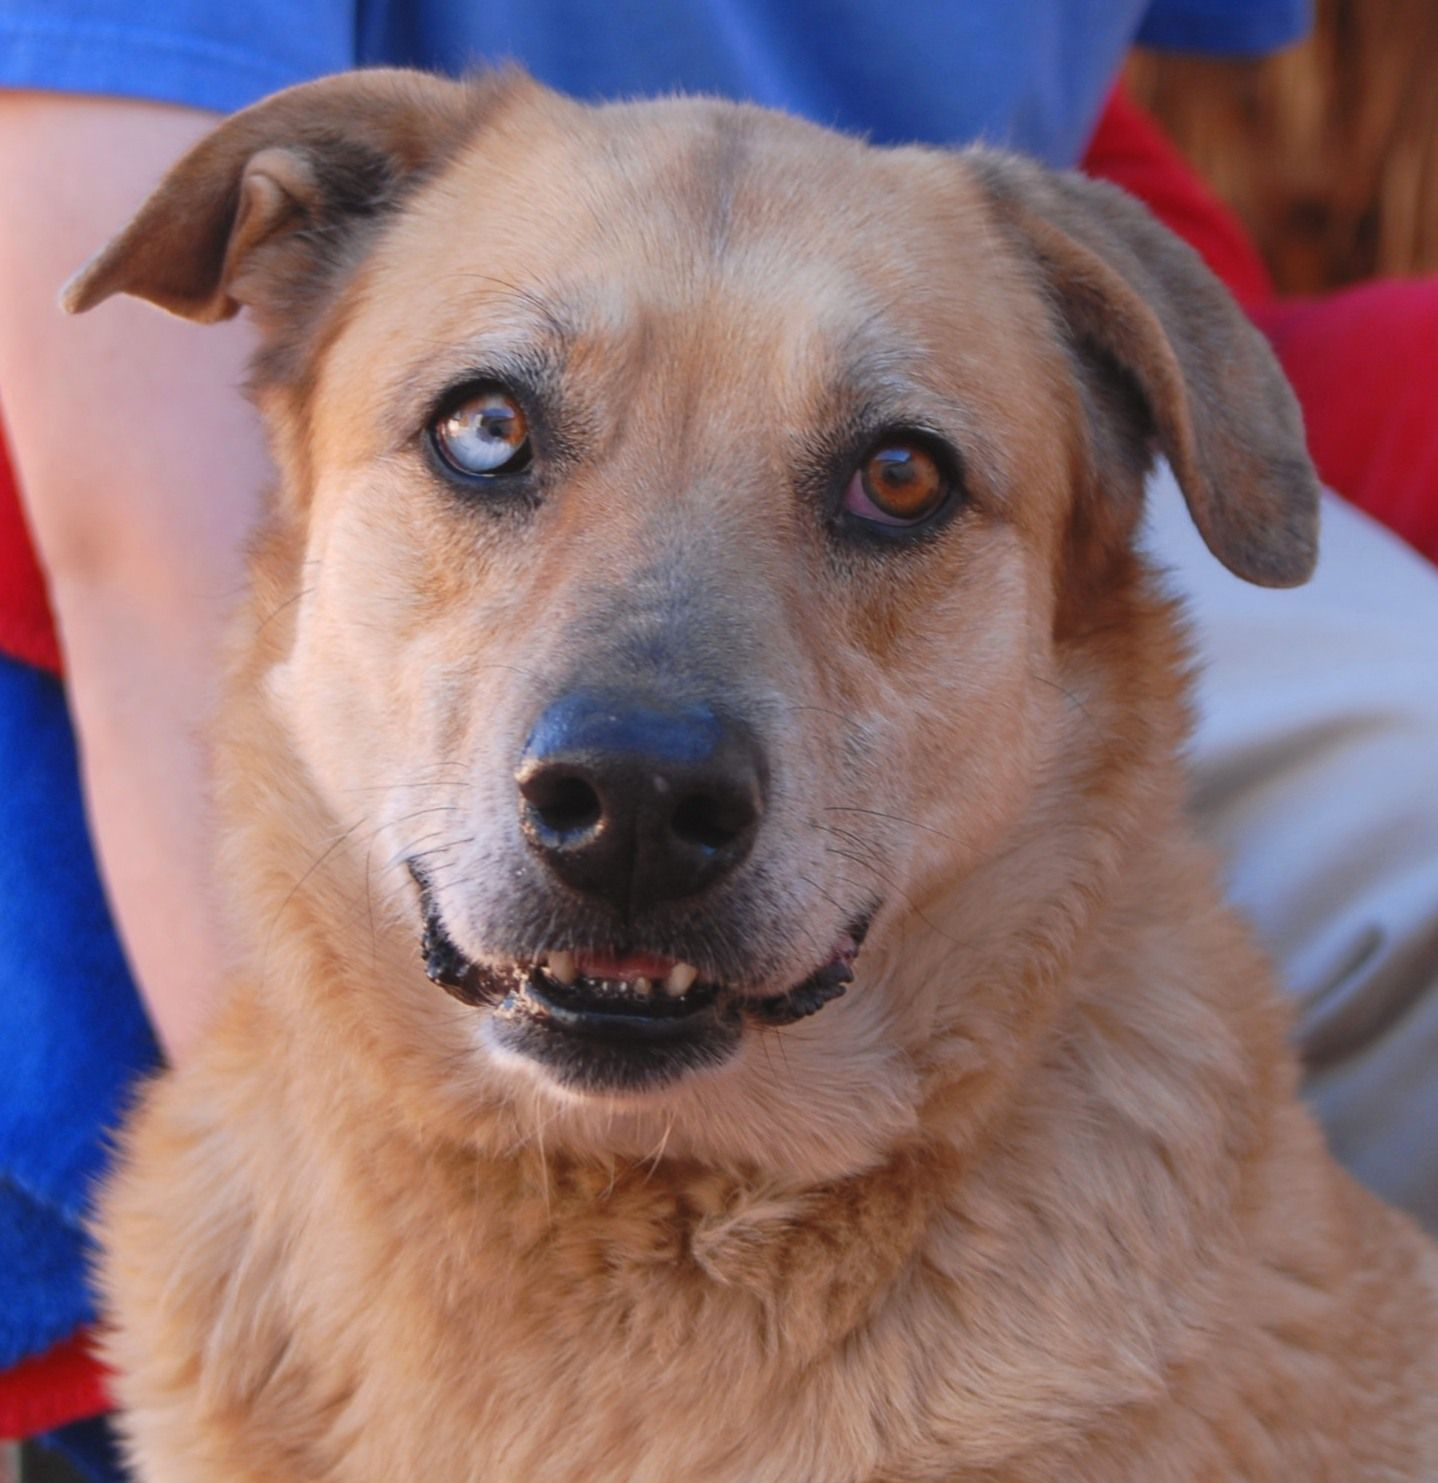 Trixie is a cheery girl with beautiful vitality and she